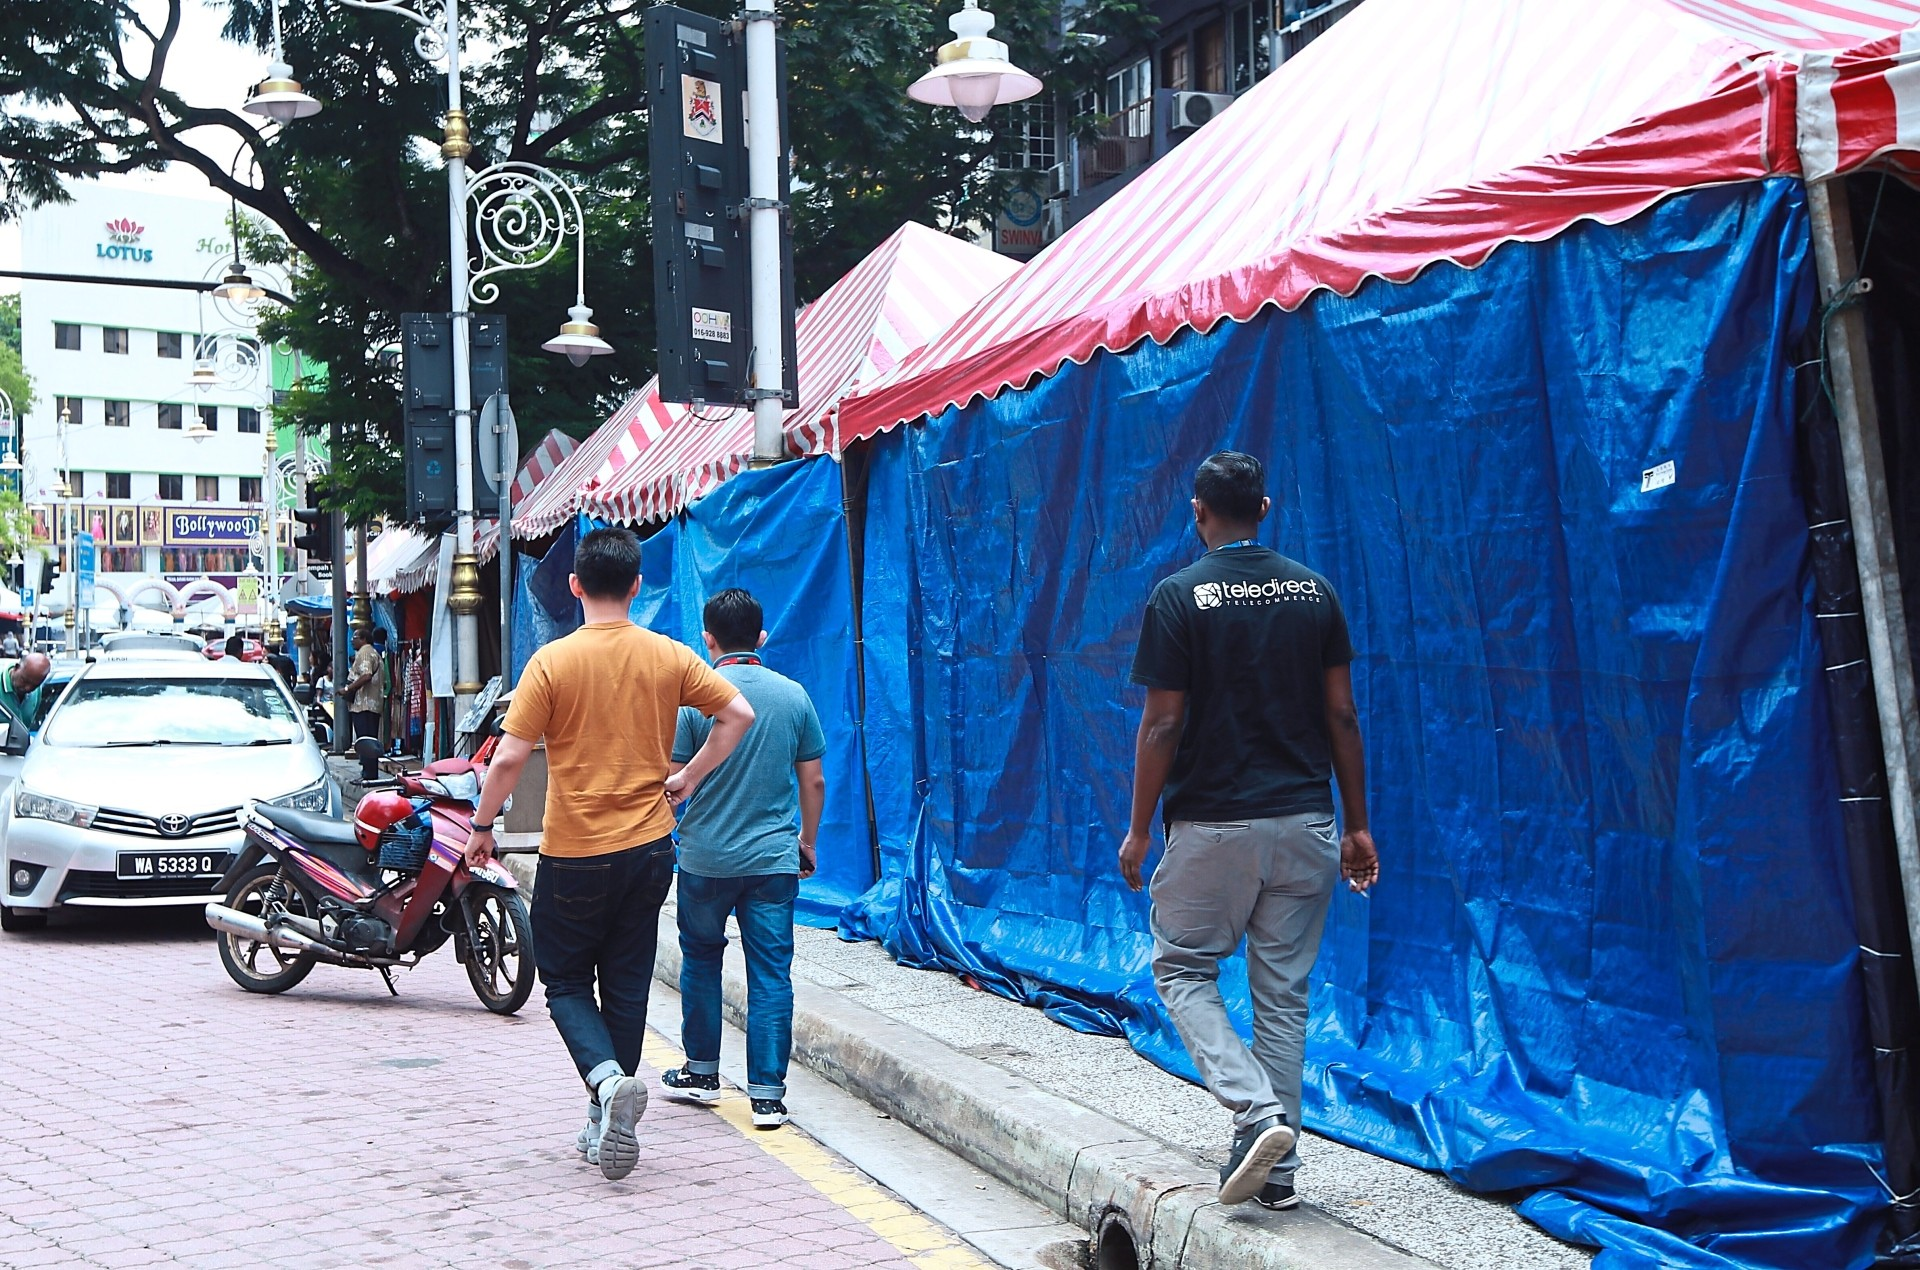 Members of the public have to watch where they walk as the festive bazaar lots have extended to the edge of the road.